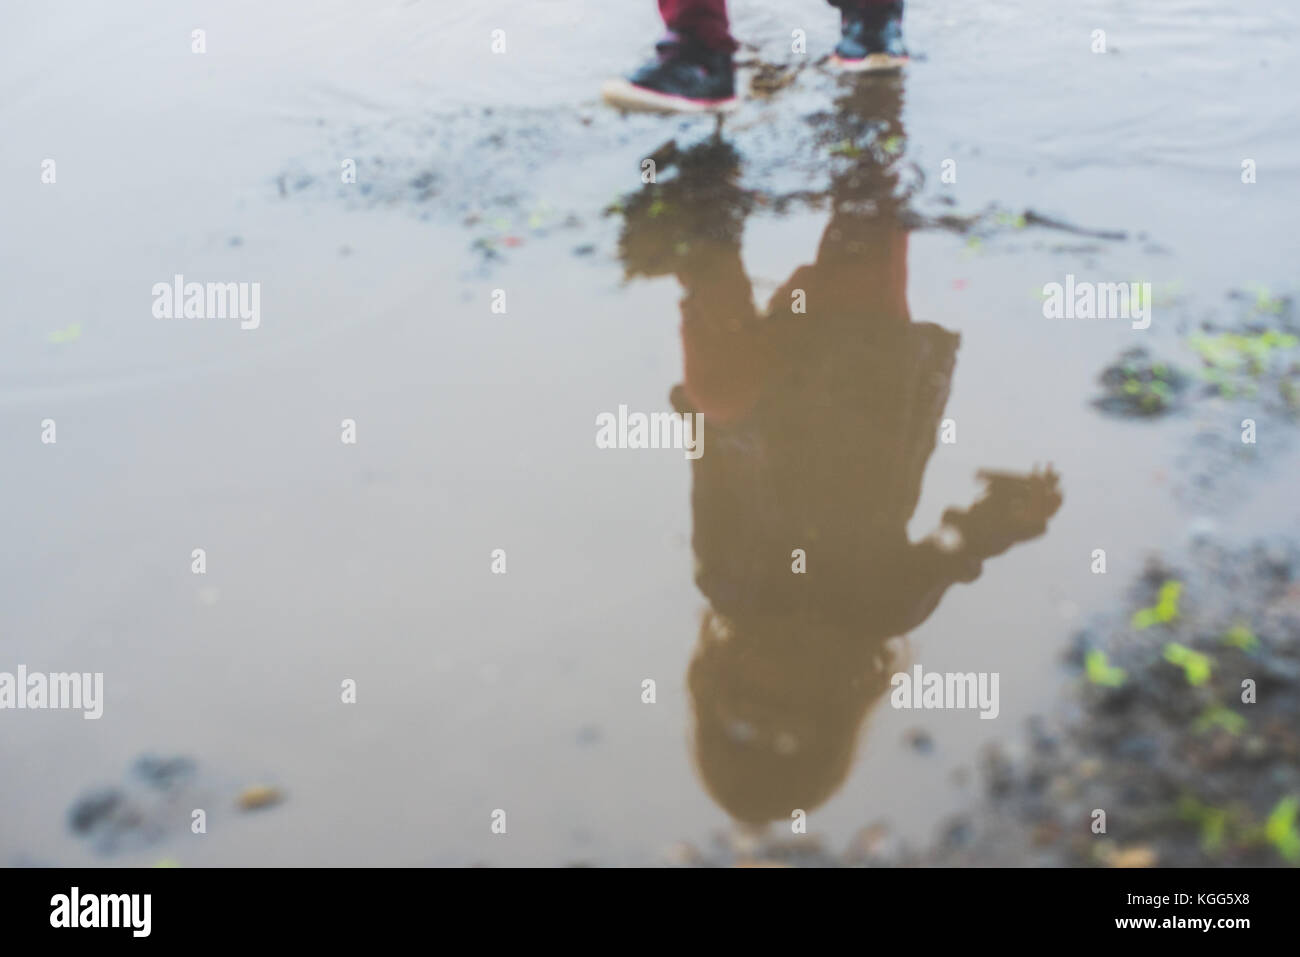 Child walking in a mud puddle - Stock Image